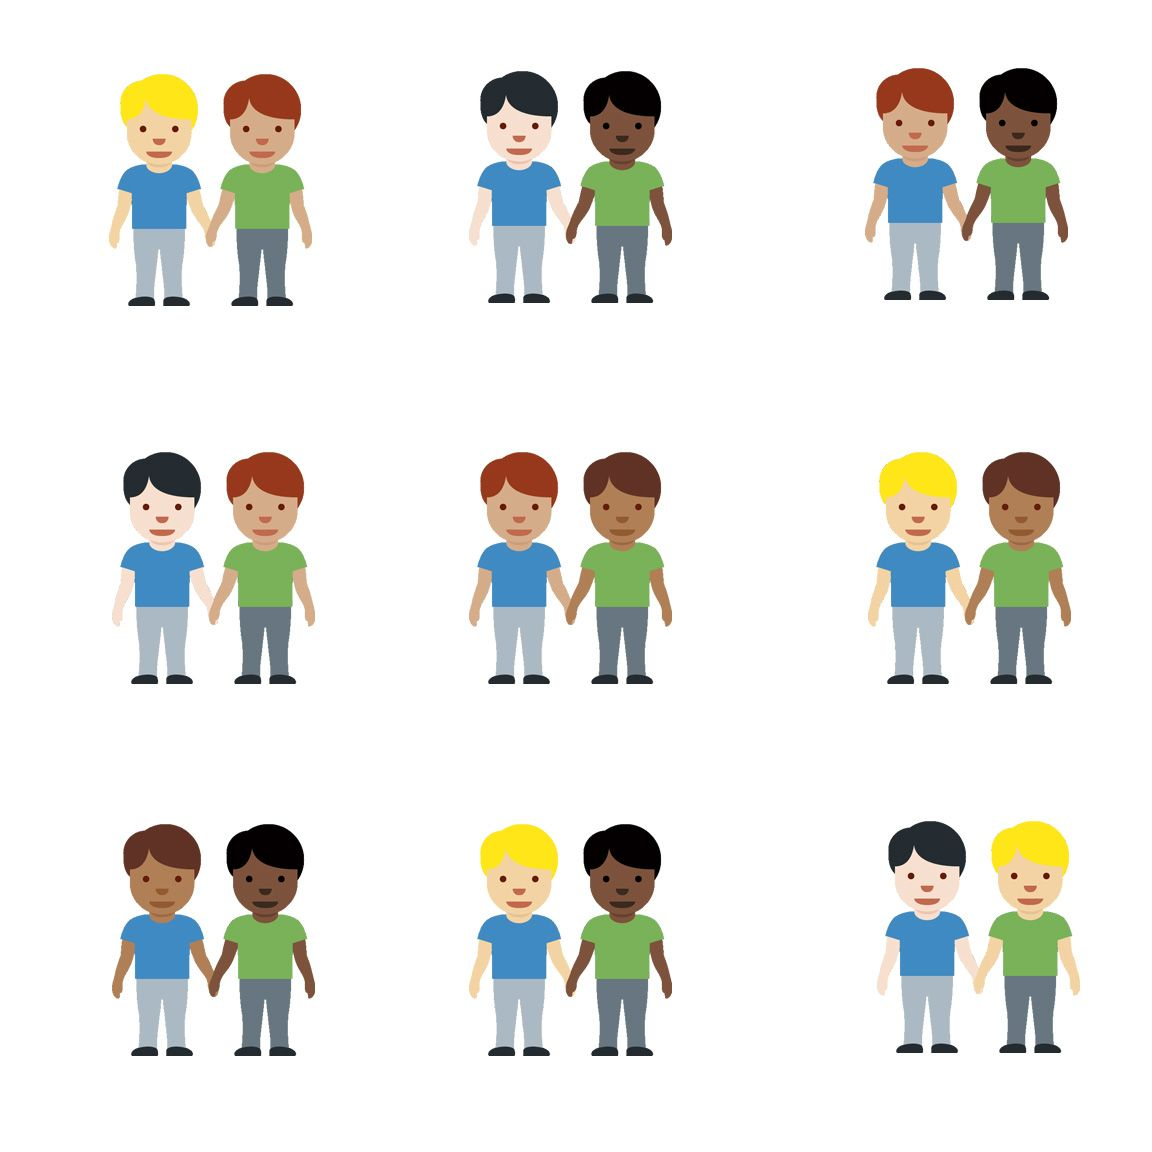 Emojipedia-Twemoji-12.3-Men-Holding-Hands